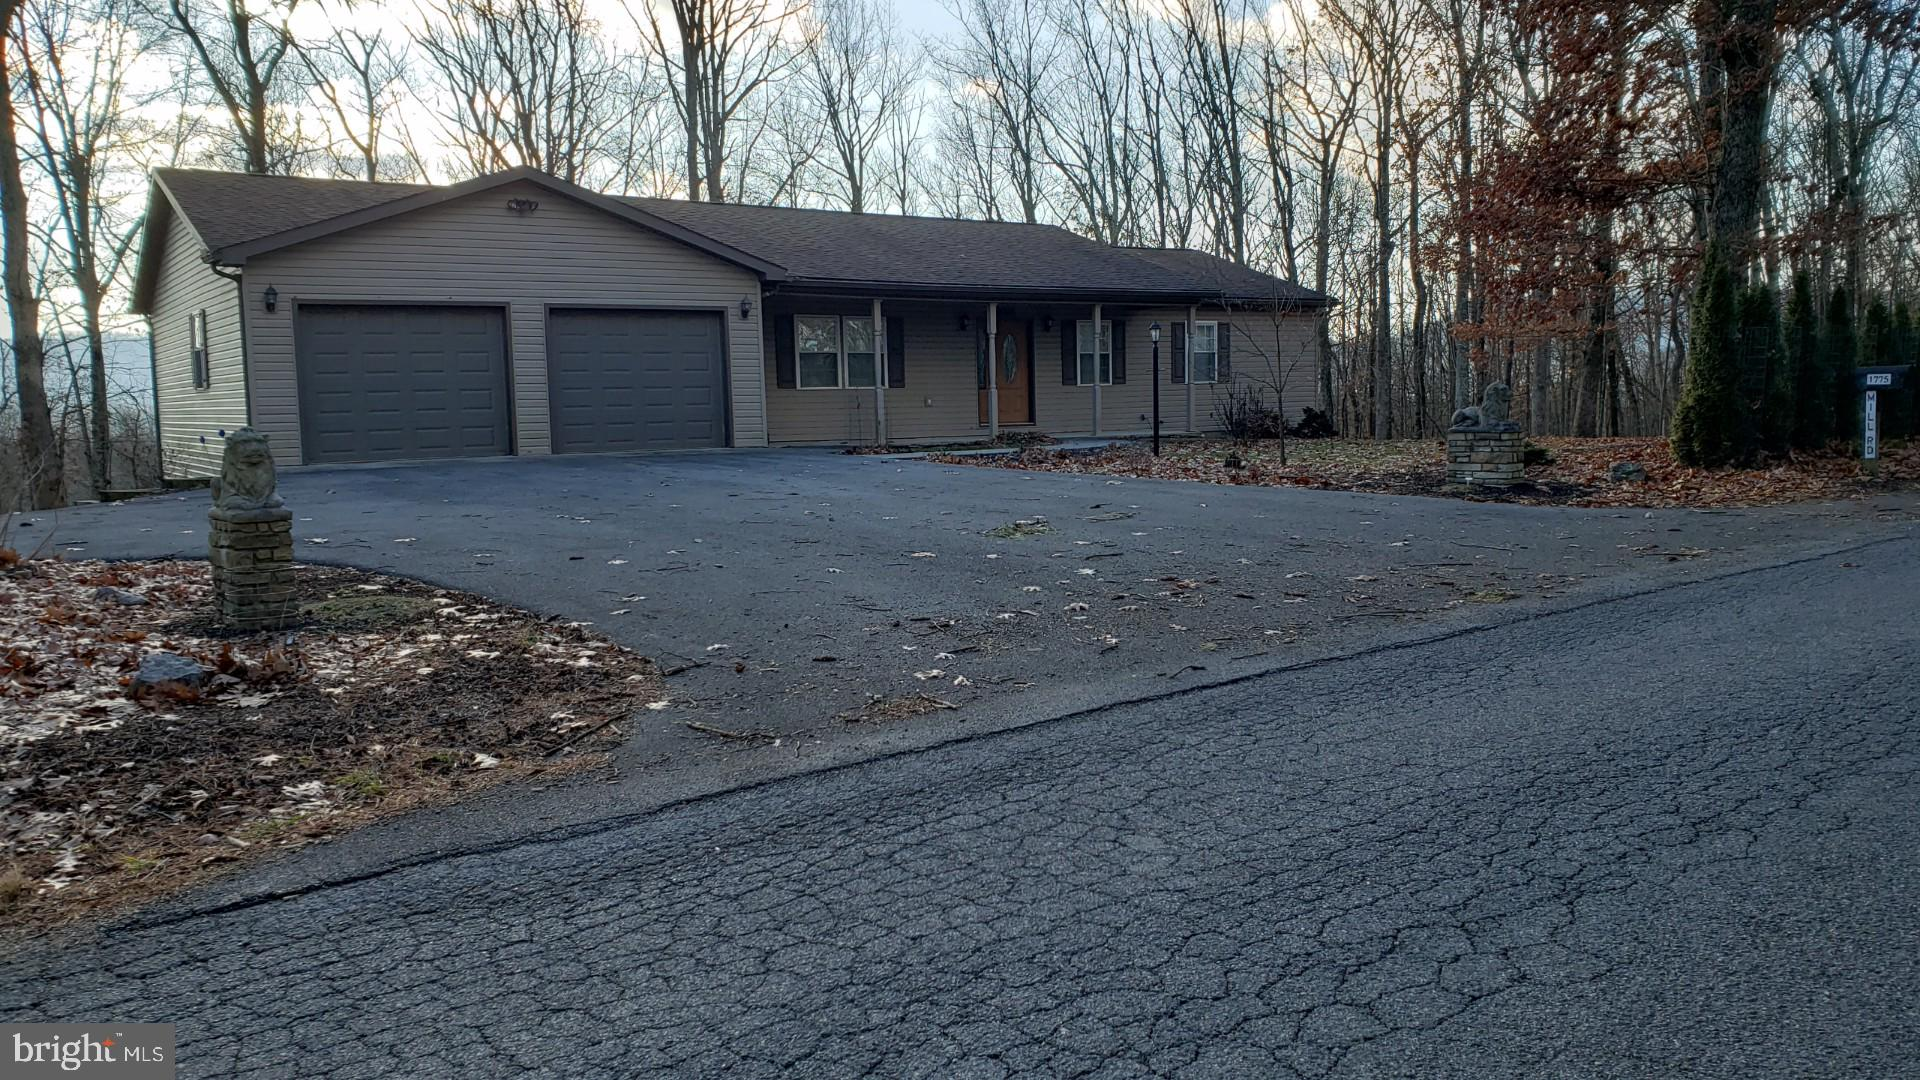 1775 MILL ROAD, MC CONNELLSBURG, PA 17233